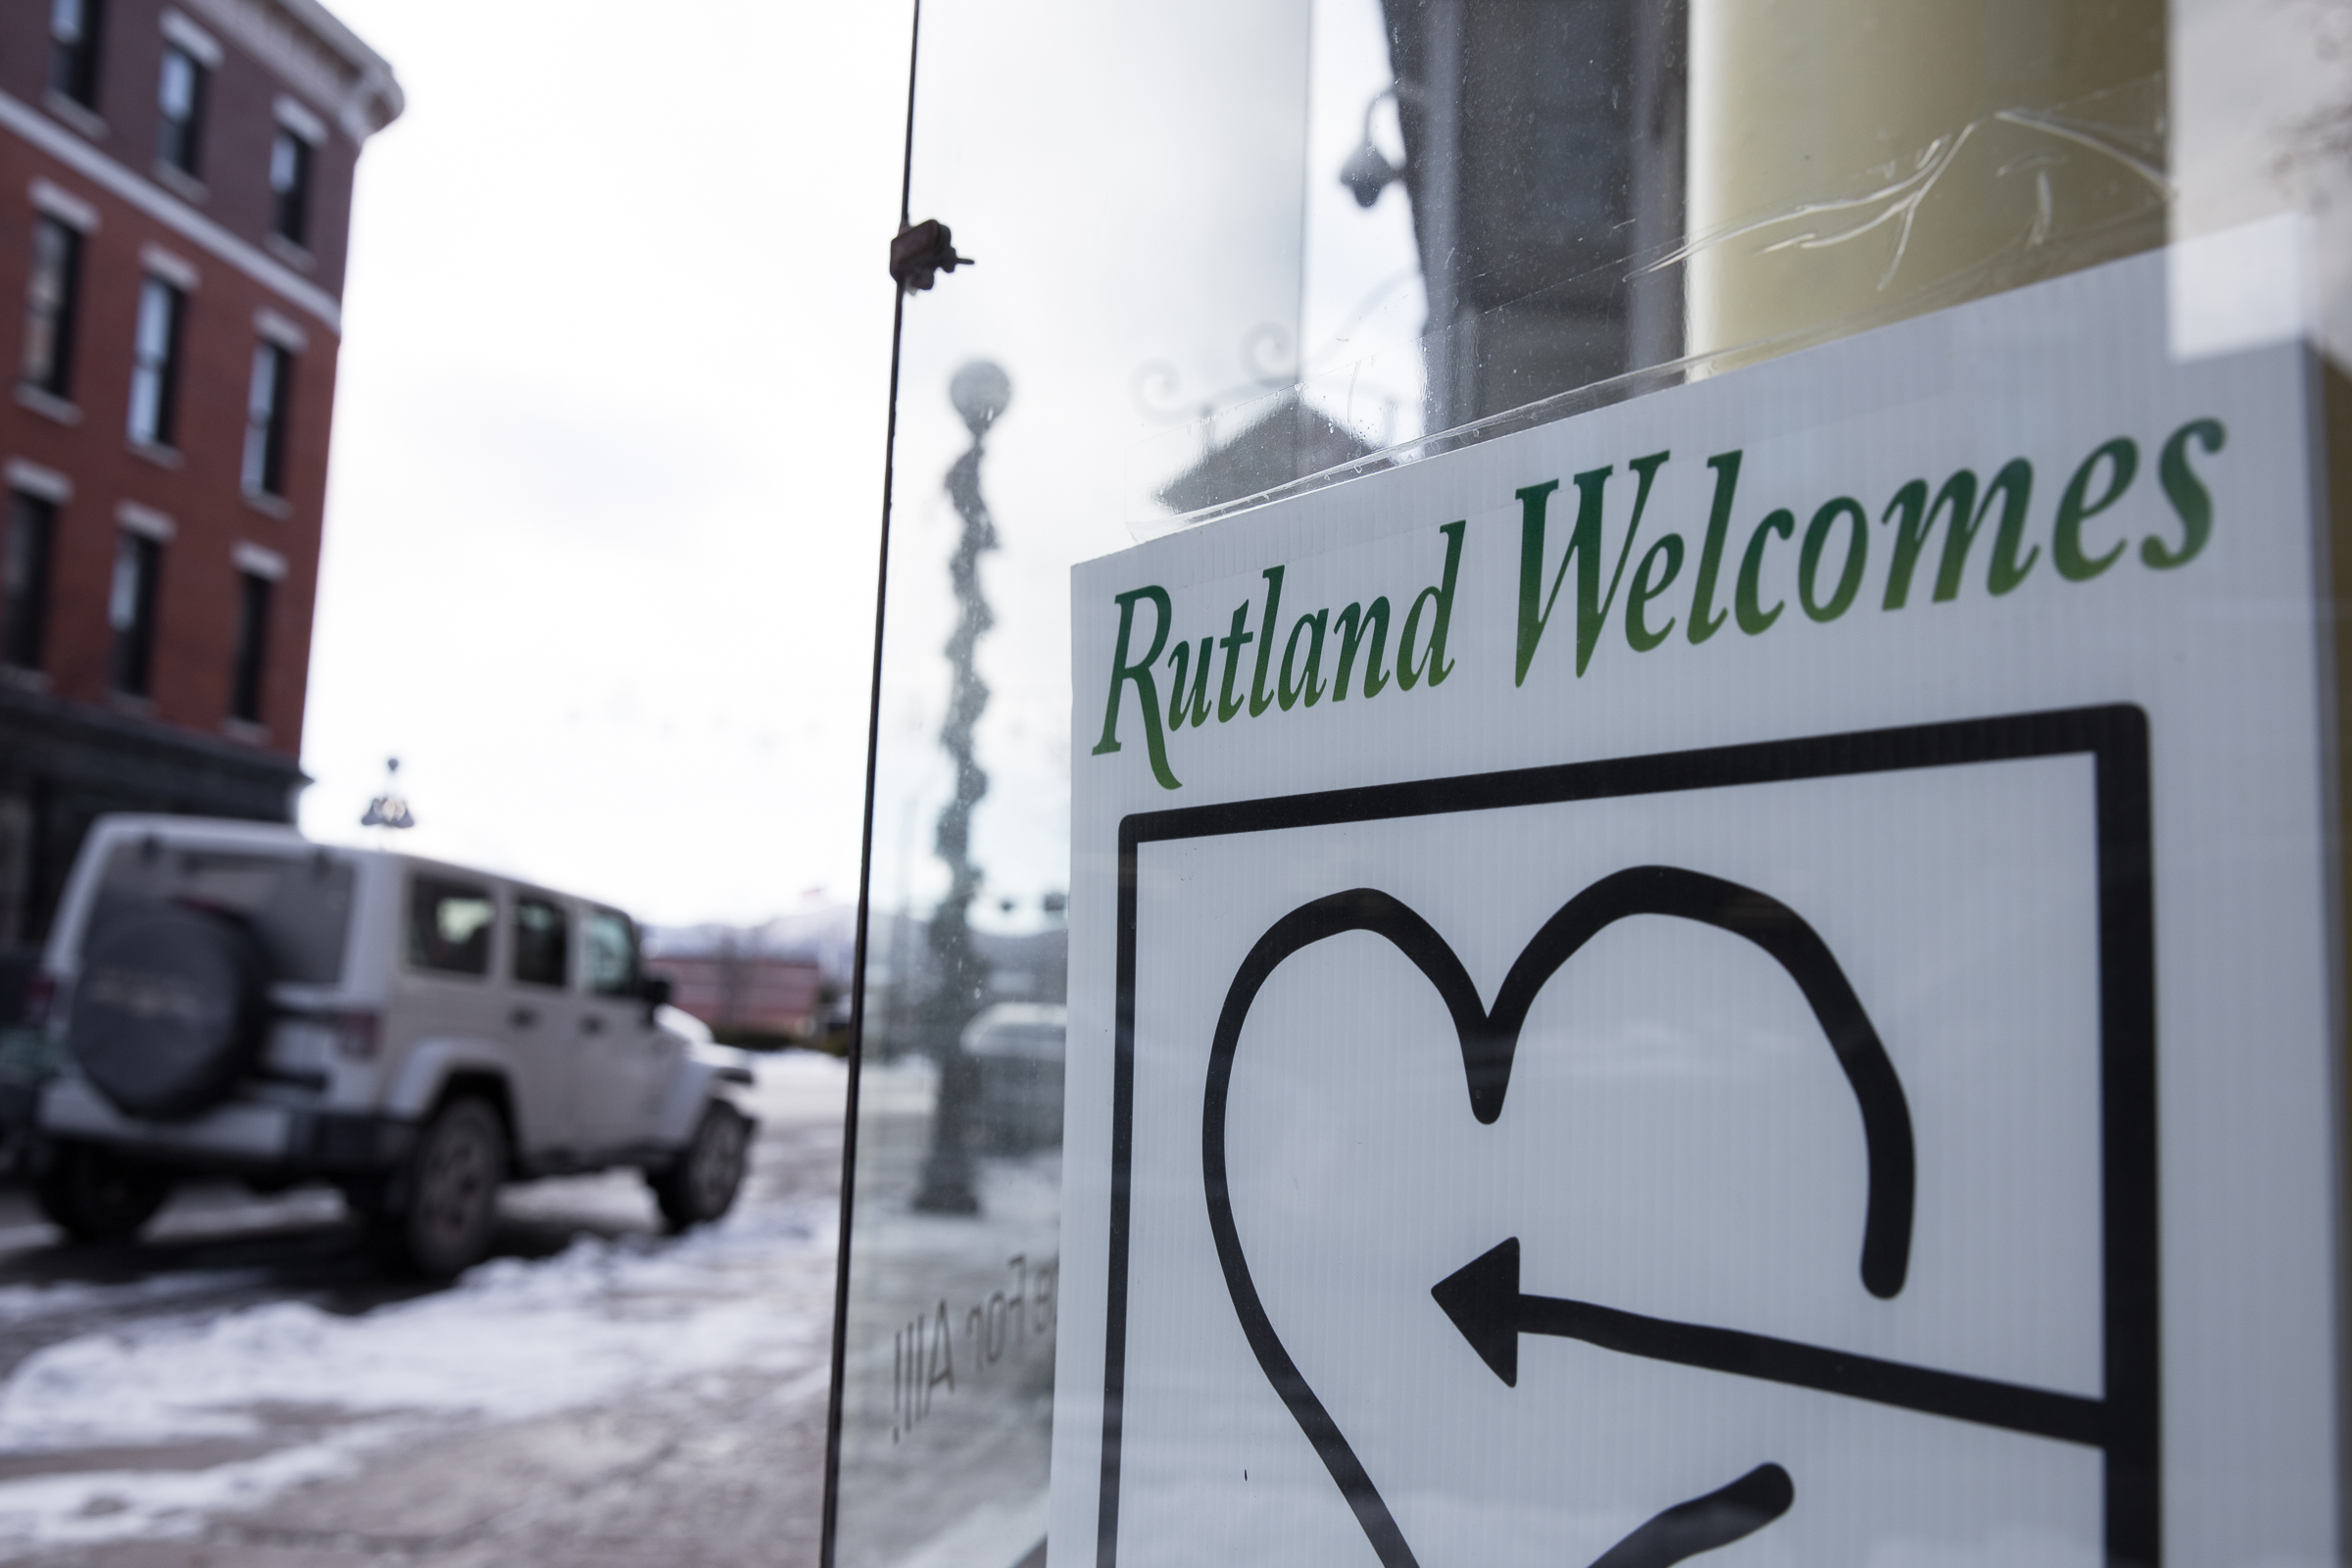 downtown rutland welcome sign-1